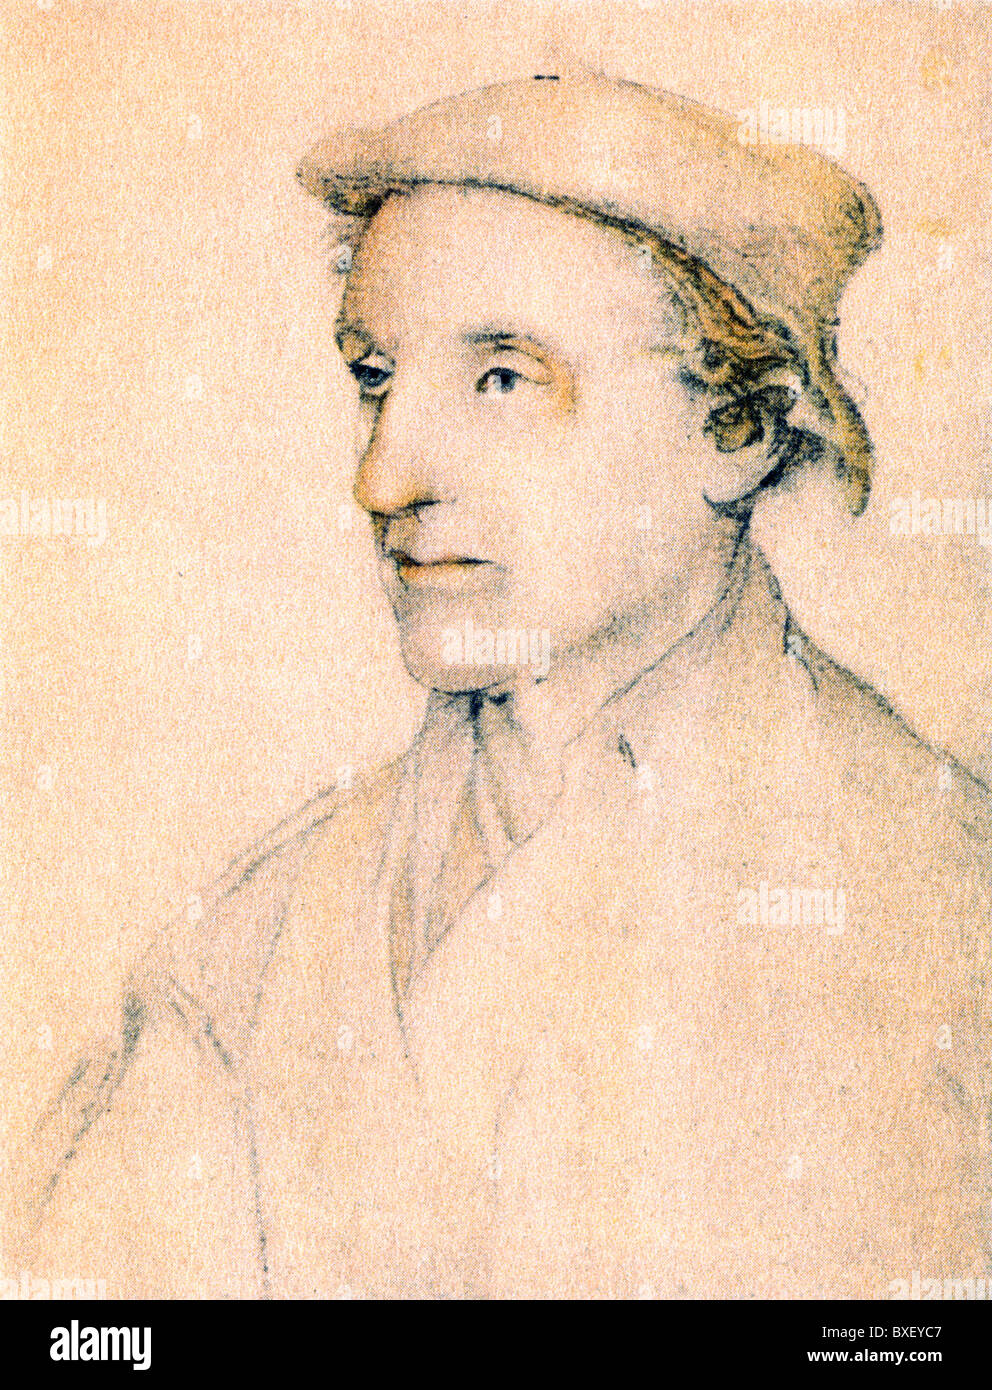 Sketch by Hans Holbein the Younger; Portrait of an Unknown Man; Colour Illustration; - Stock Image